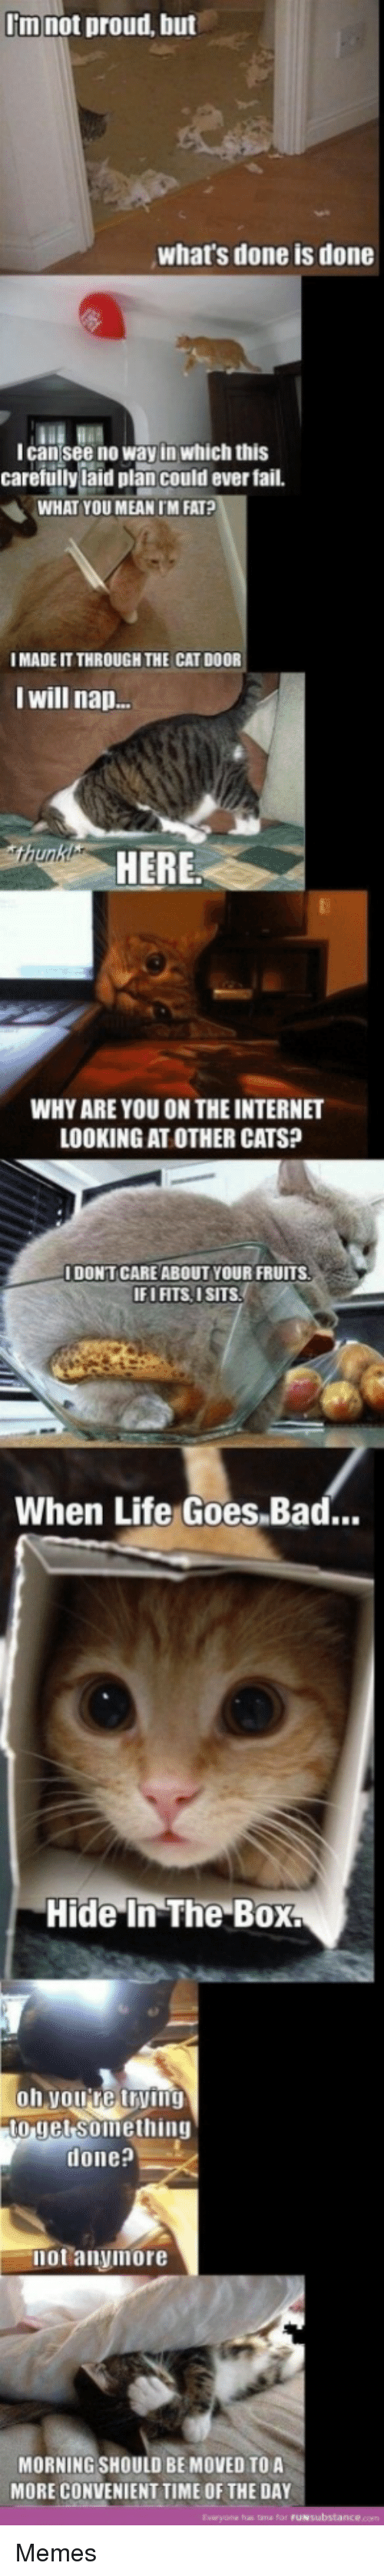 Bad, Cats, and Fail: I'm not proud, but  what's done is done  lcan see no way in which this  carefullyiaid plan could ever fail.  WHAT YOU MEAN IM FAT?  I MADE IT THROUGH THE CAT DOOR  I will nap.  HERE  WHY ARE YOU ON THE INTERNET  LOOKING AT OTHER CATS?  I DONTCARE ABOUT YOUR FRUITS  IFI FITS, 1SITS  When Life Goes.Bad..  Hide In The Box  o jet Soimething  done?  not anyimore  MORNING SHOULD BE MOVED TO A  MORE CONVENIENT TIME OF THE DAY  Eviryona has tane for Memes